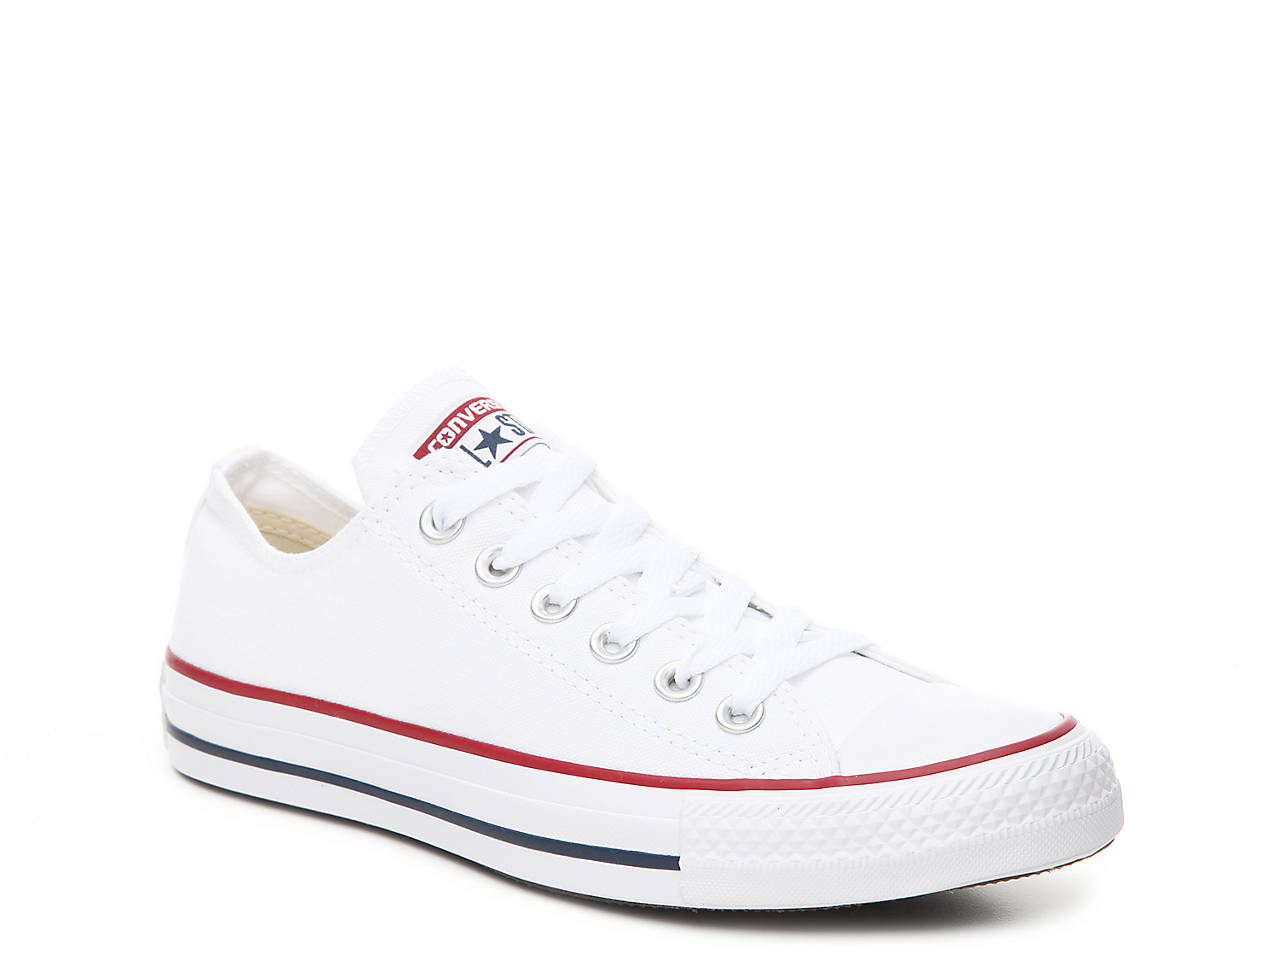 e25434545120 Converse Chuck Taylor All Star Sneaker - Women s Women s Shoes